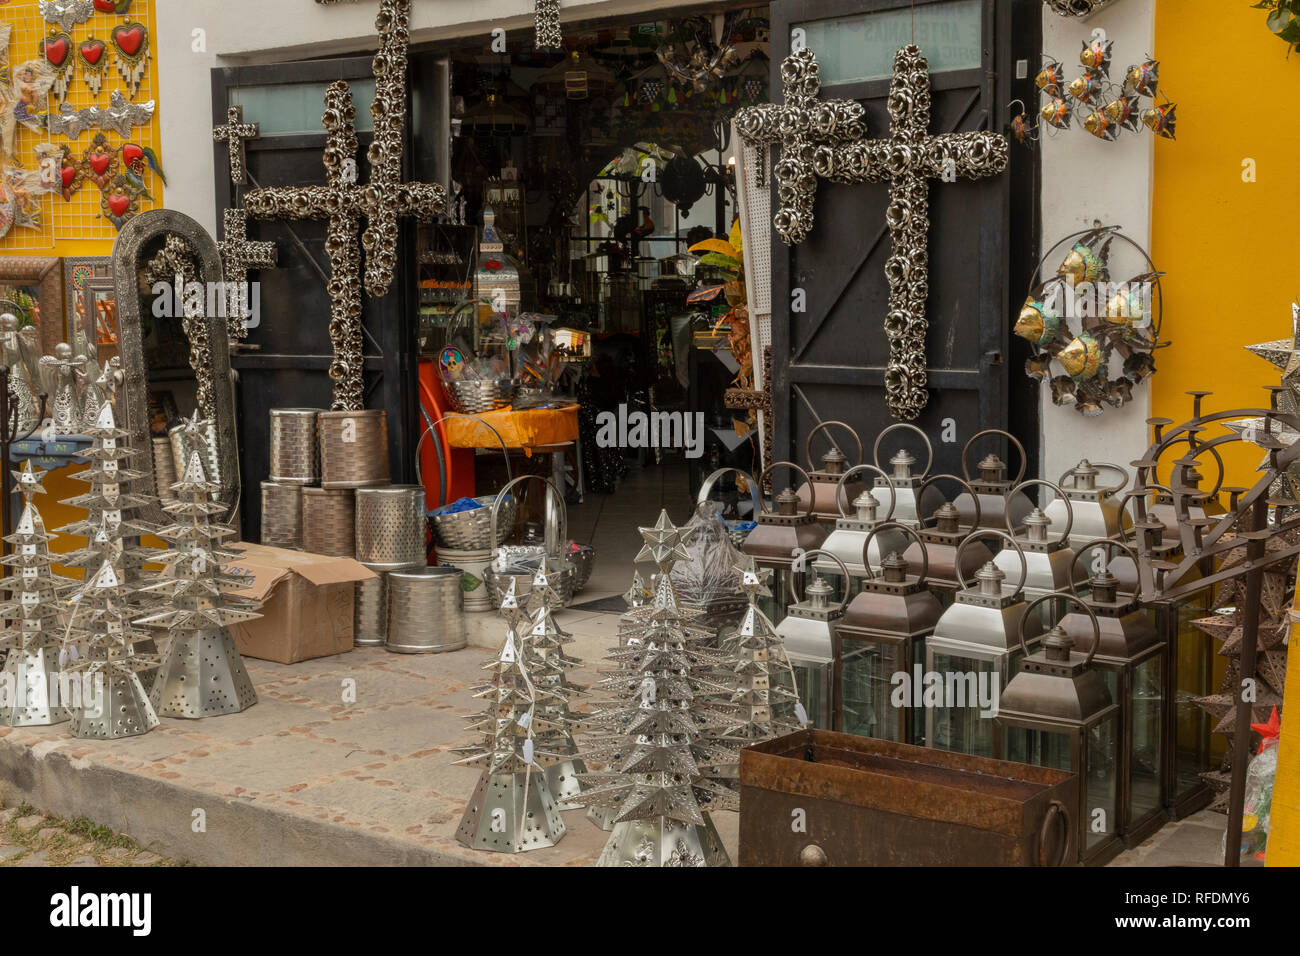 Craft and furnishing shop, San Miguel de Allende, central Mexico. - Stock Image